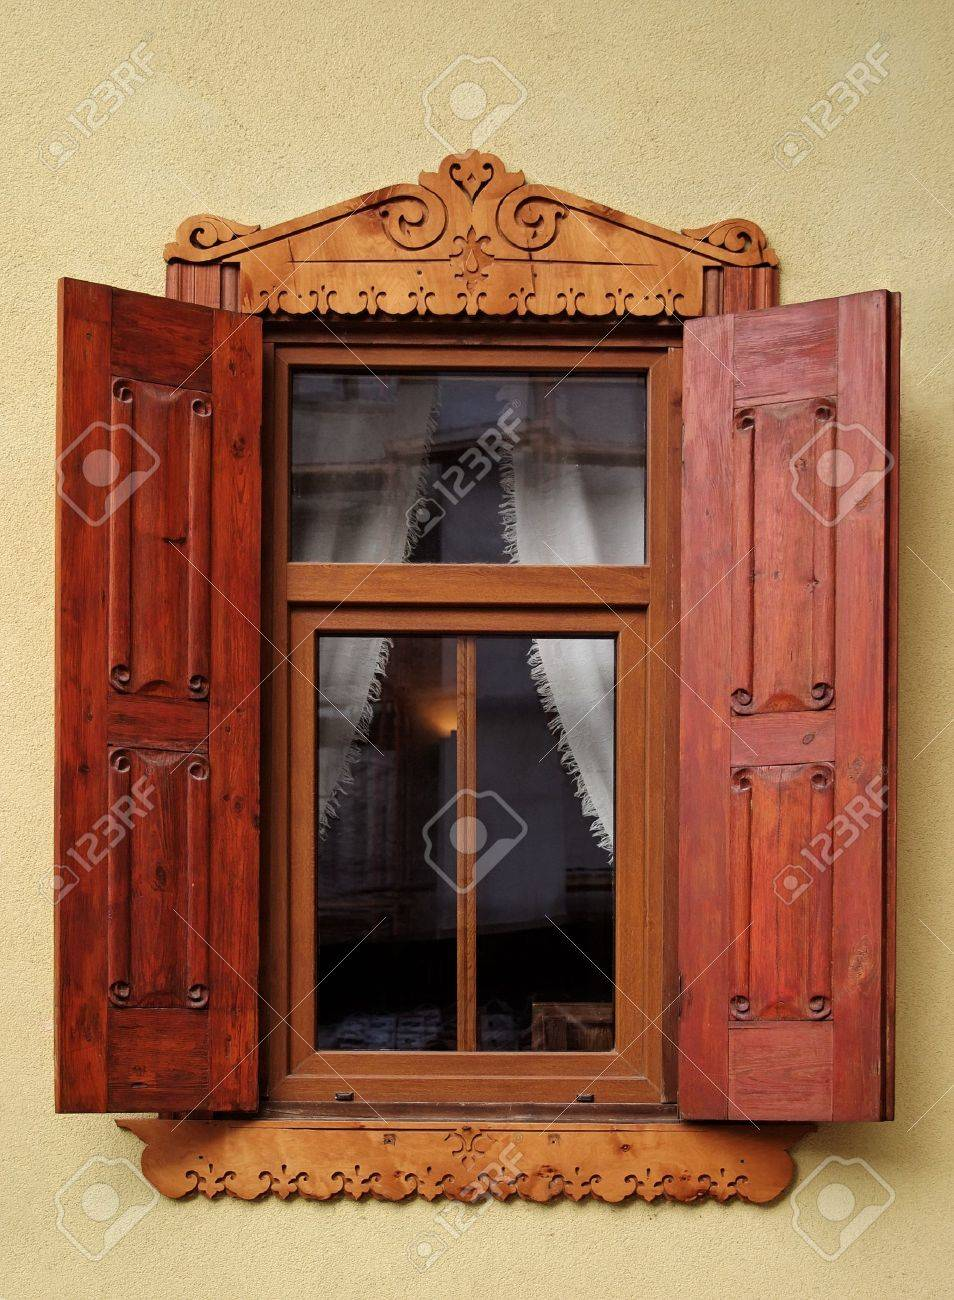 Old Window Old Window Stock Photos Royalty Free Old Window Images And Pictures